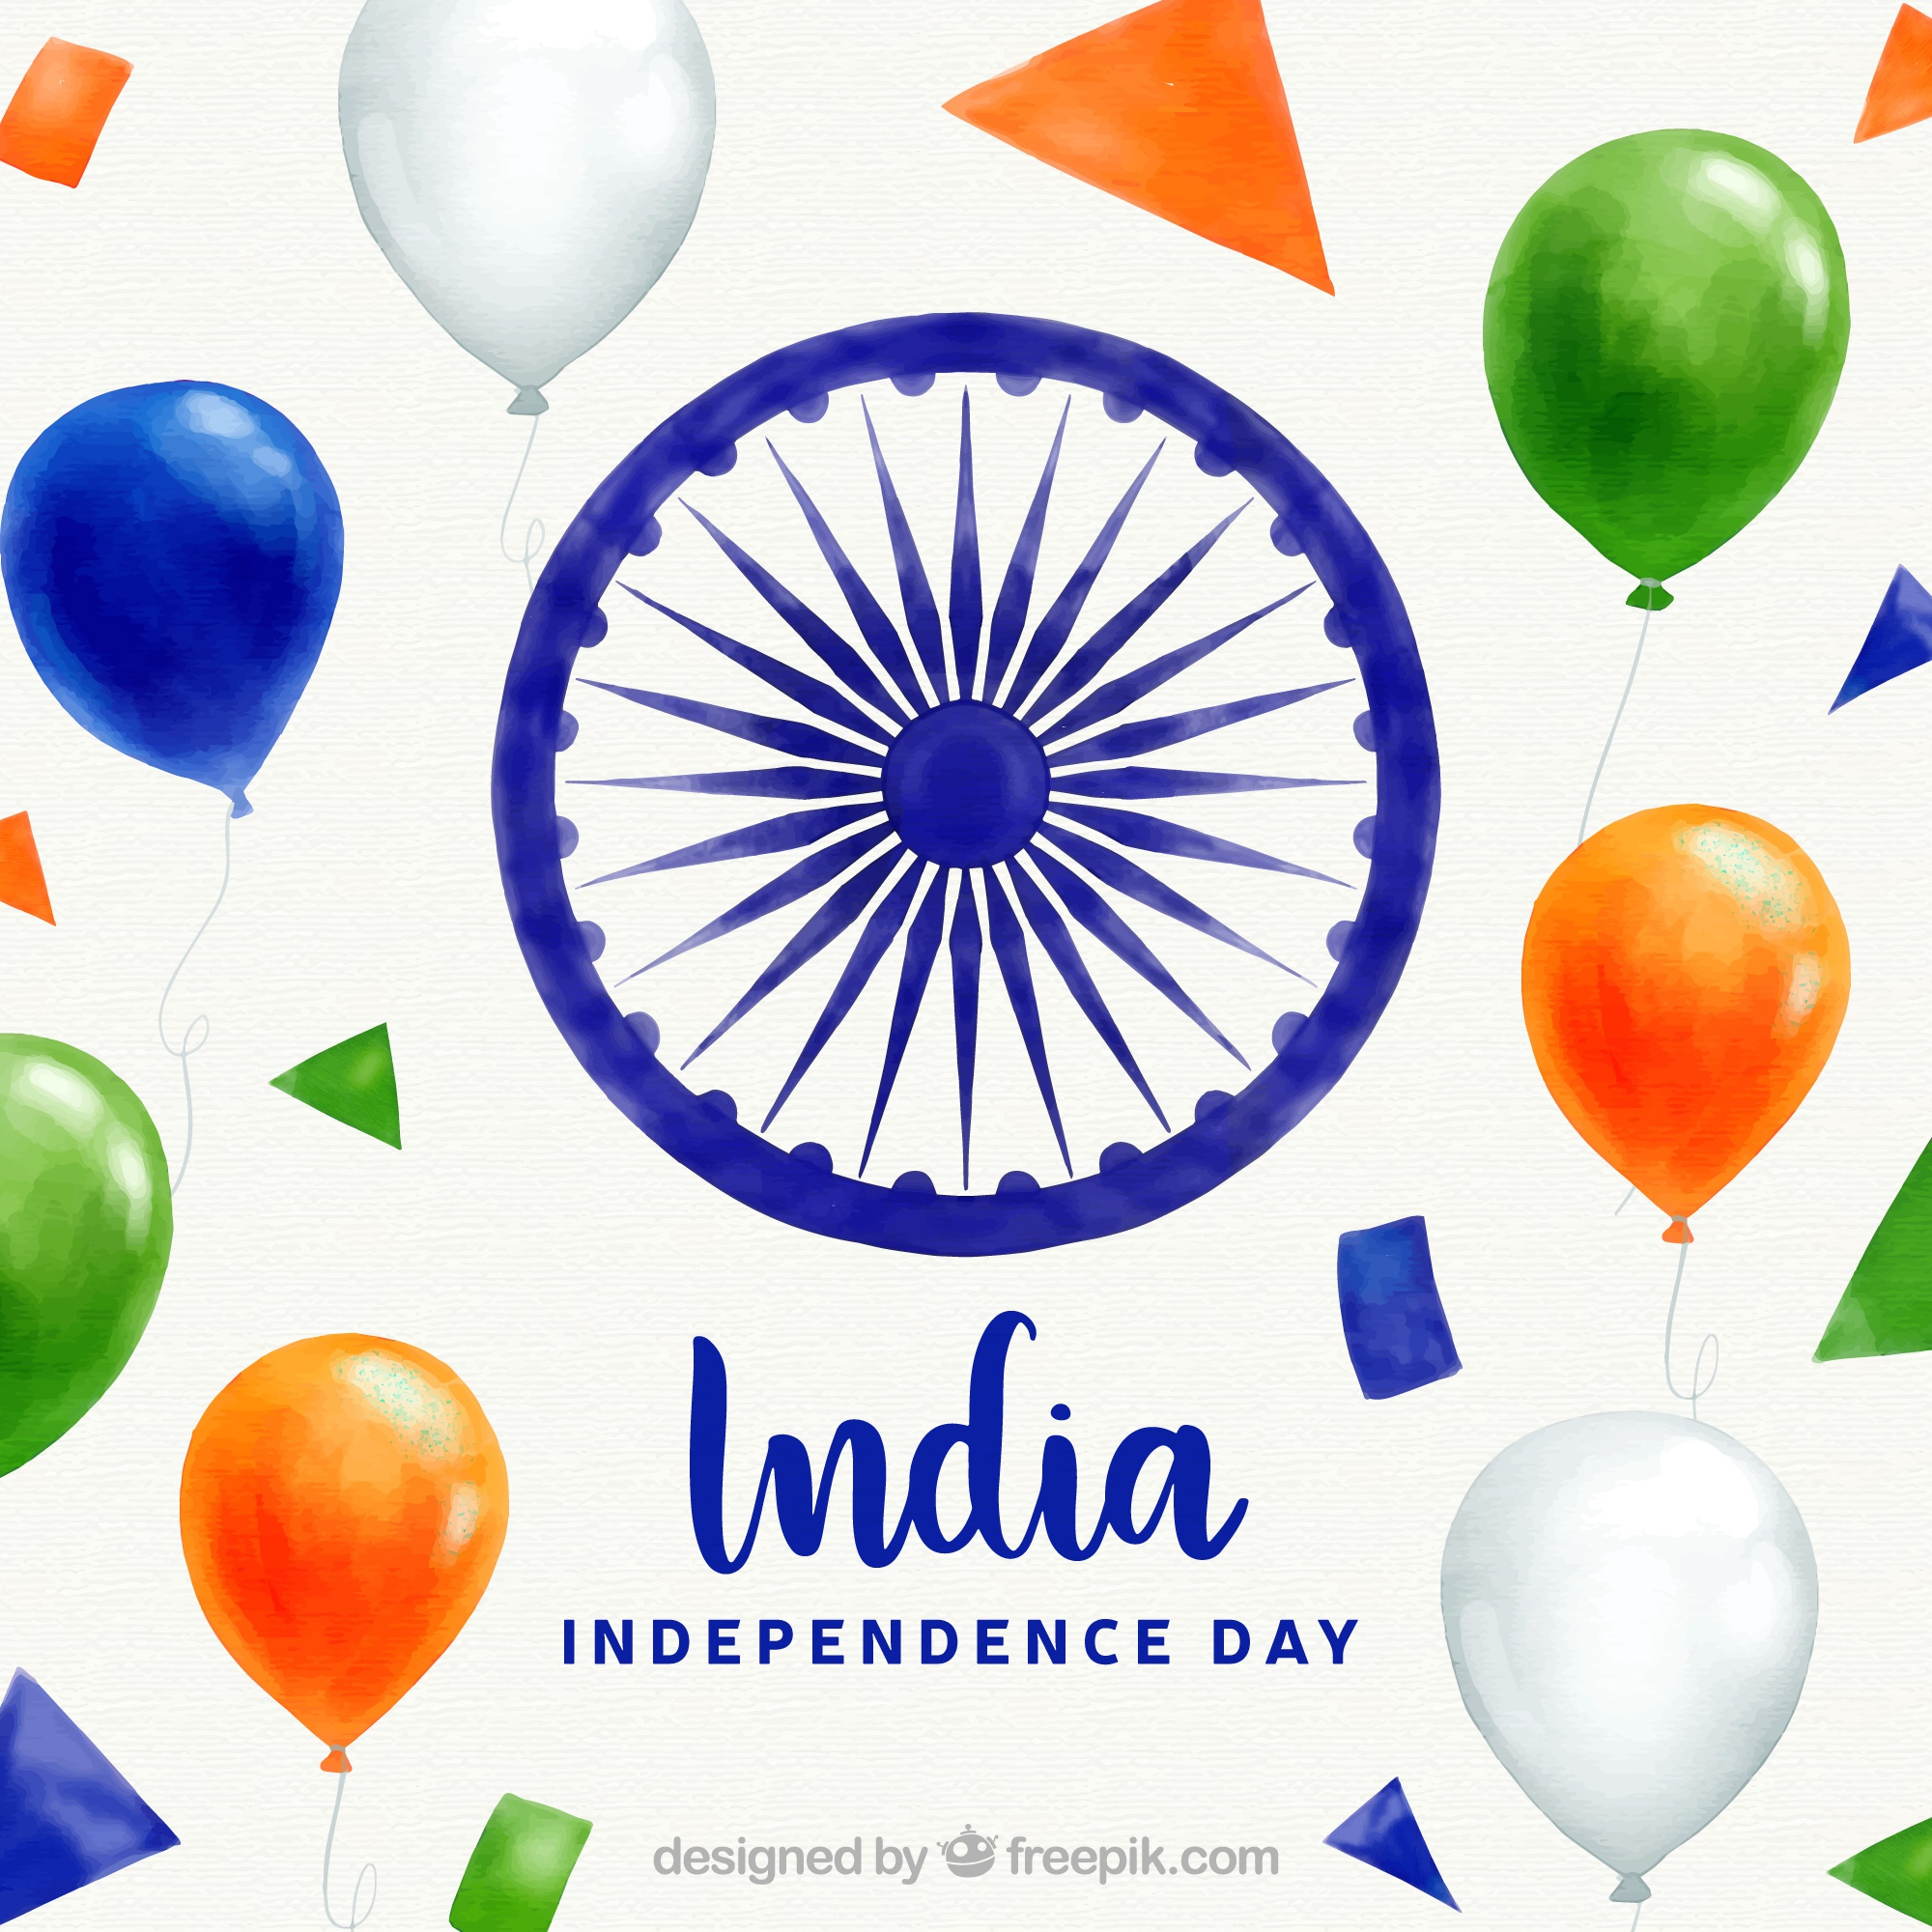 Indian independence day background with realistic balloons